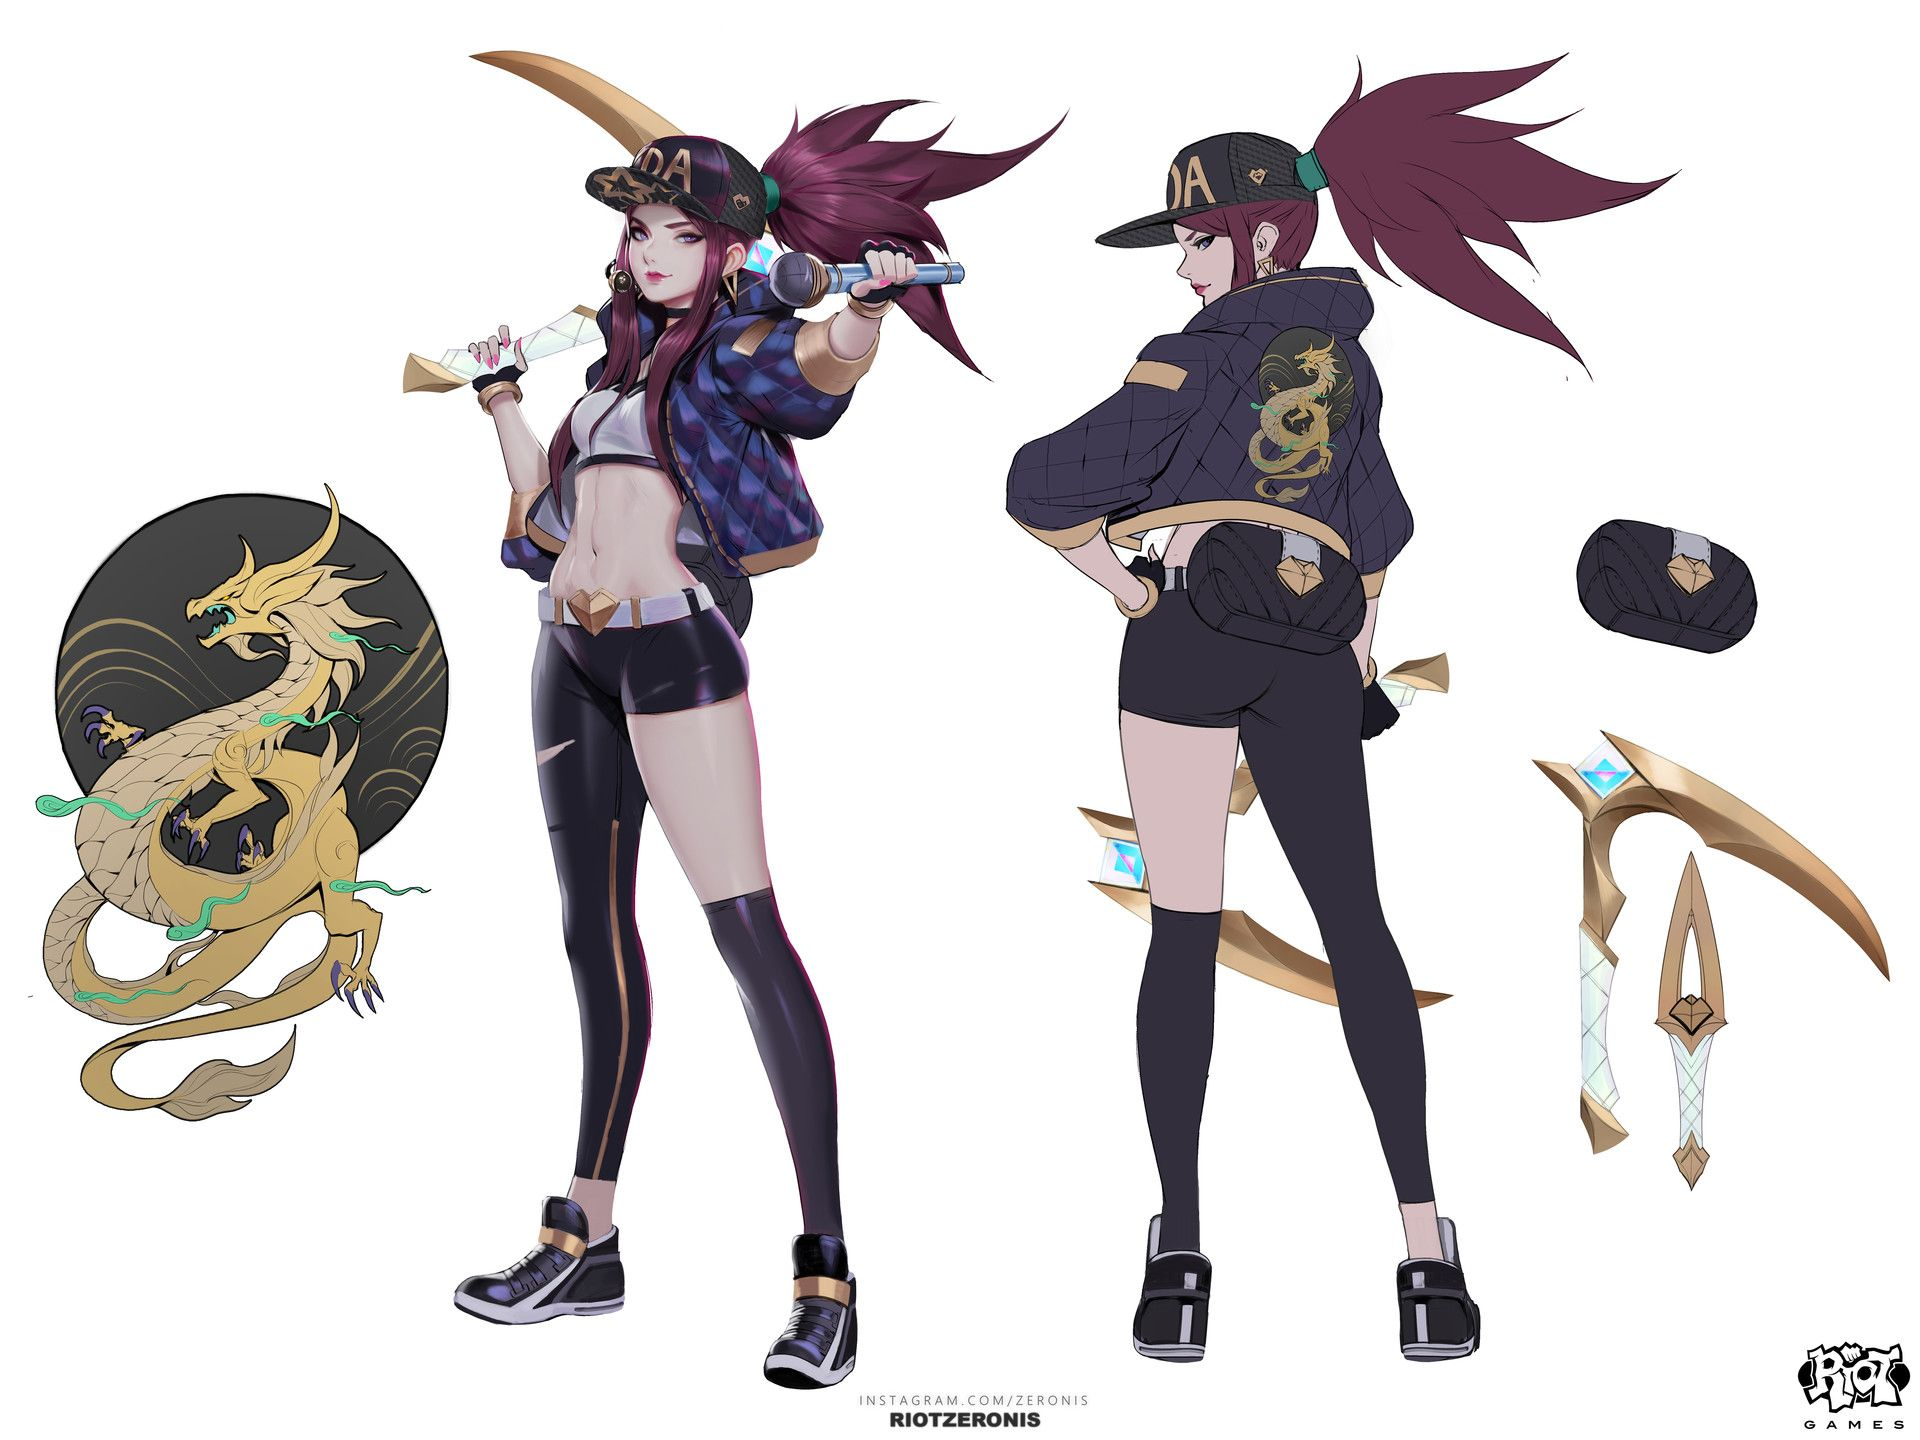 Akali lol character sheet character concept art game character league of legends